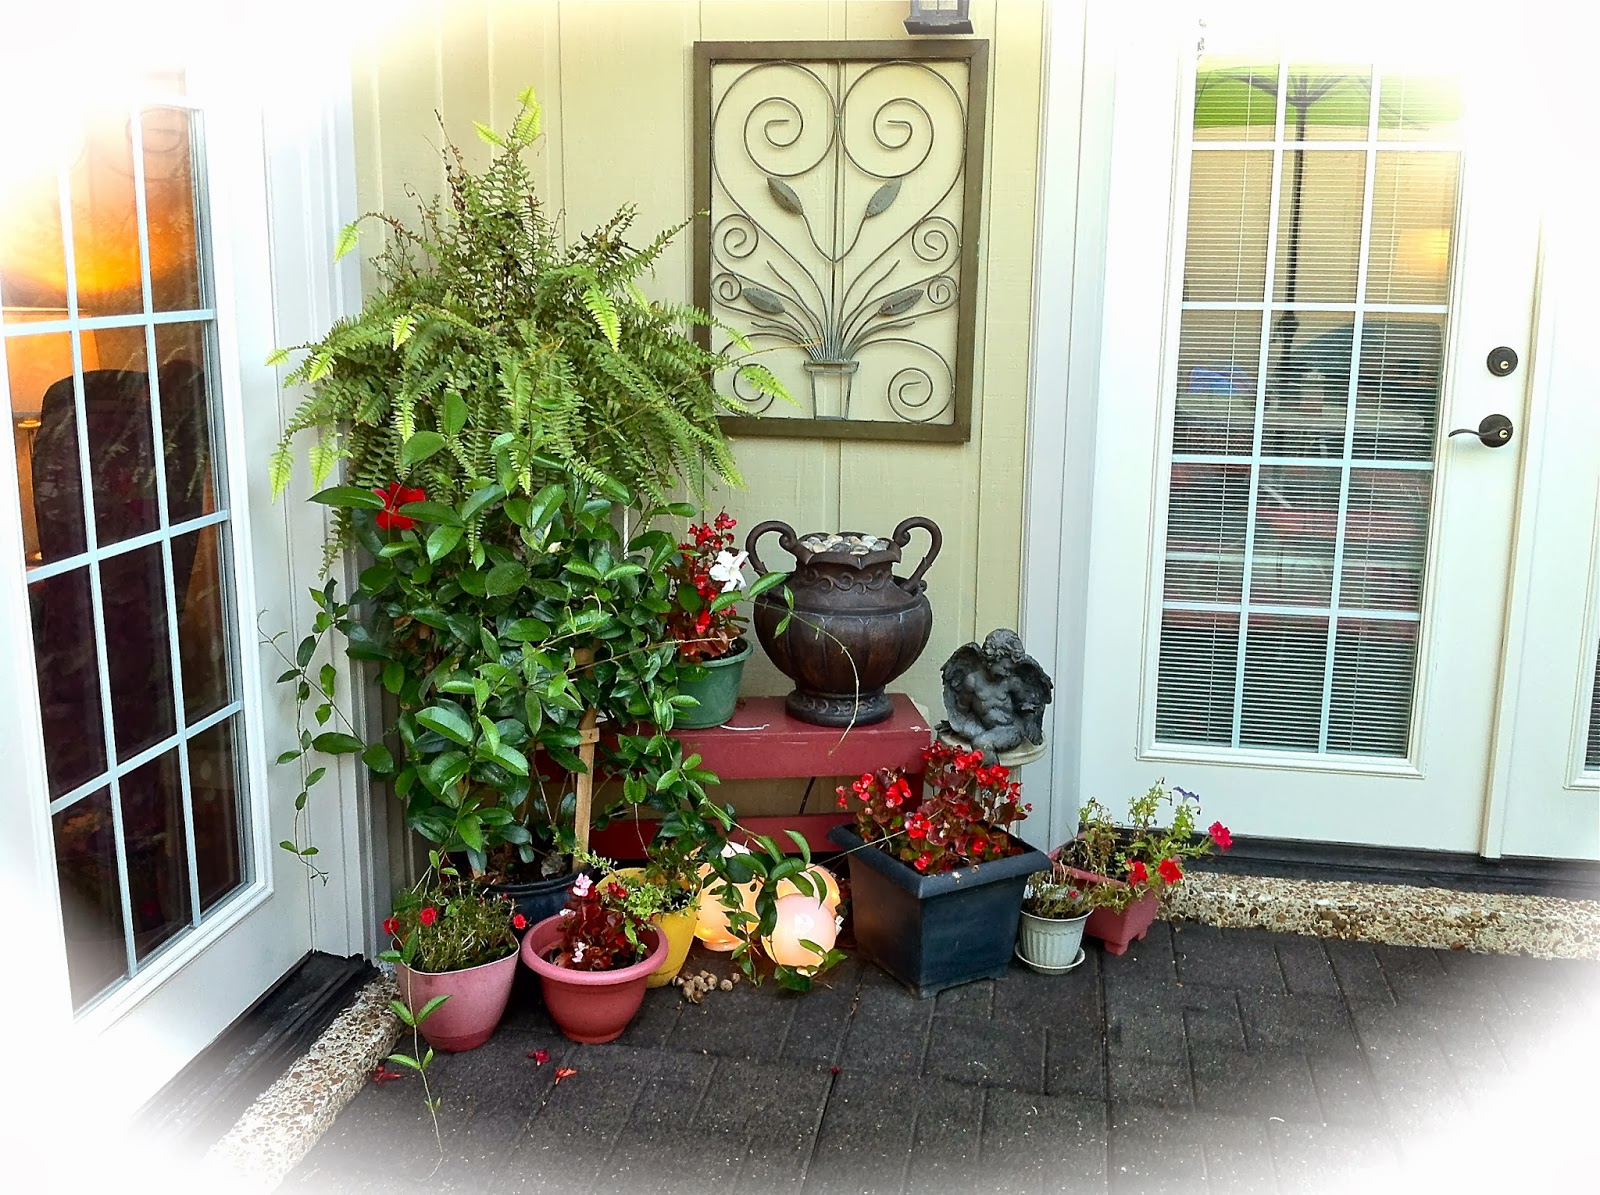 Everyday Donna: How To Decorate Potted Plants With Burlap